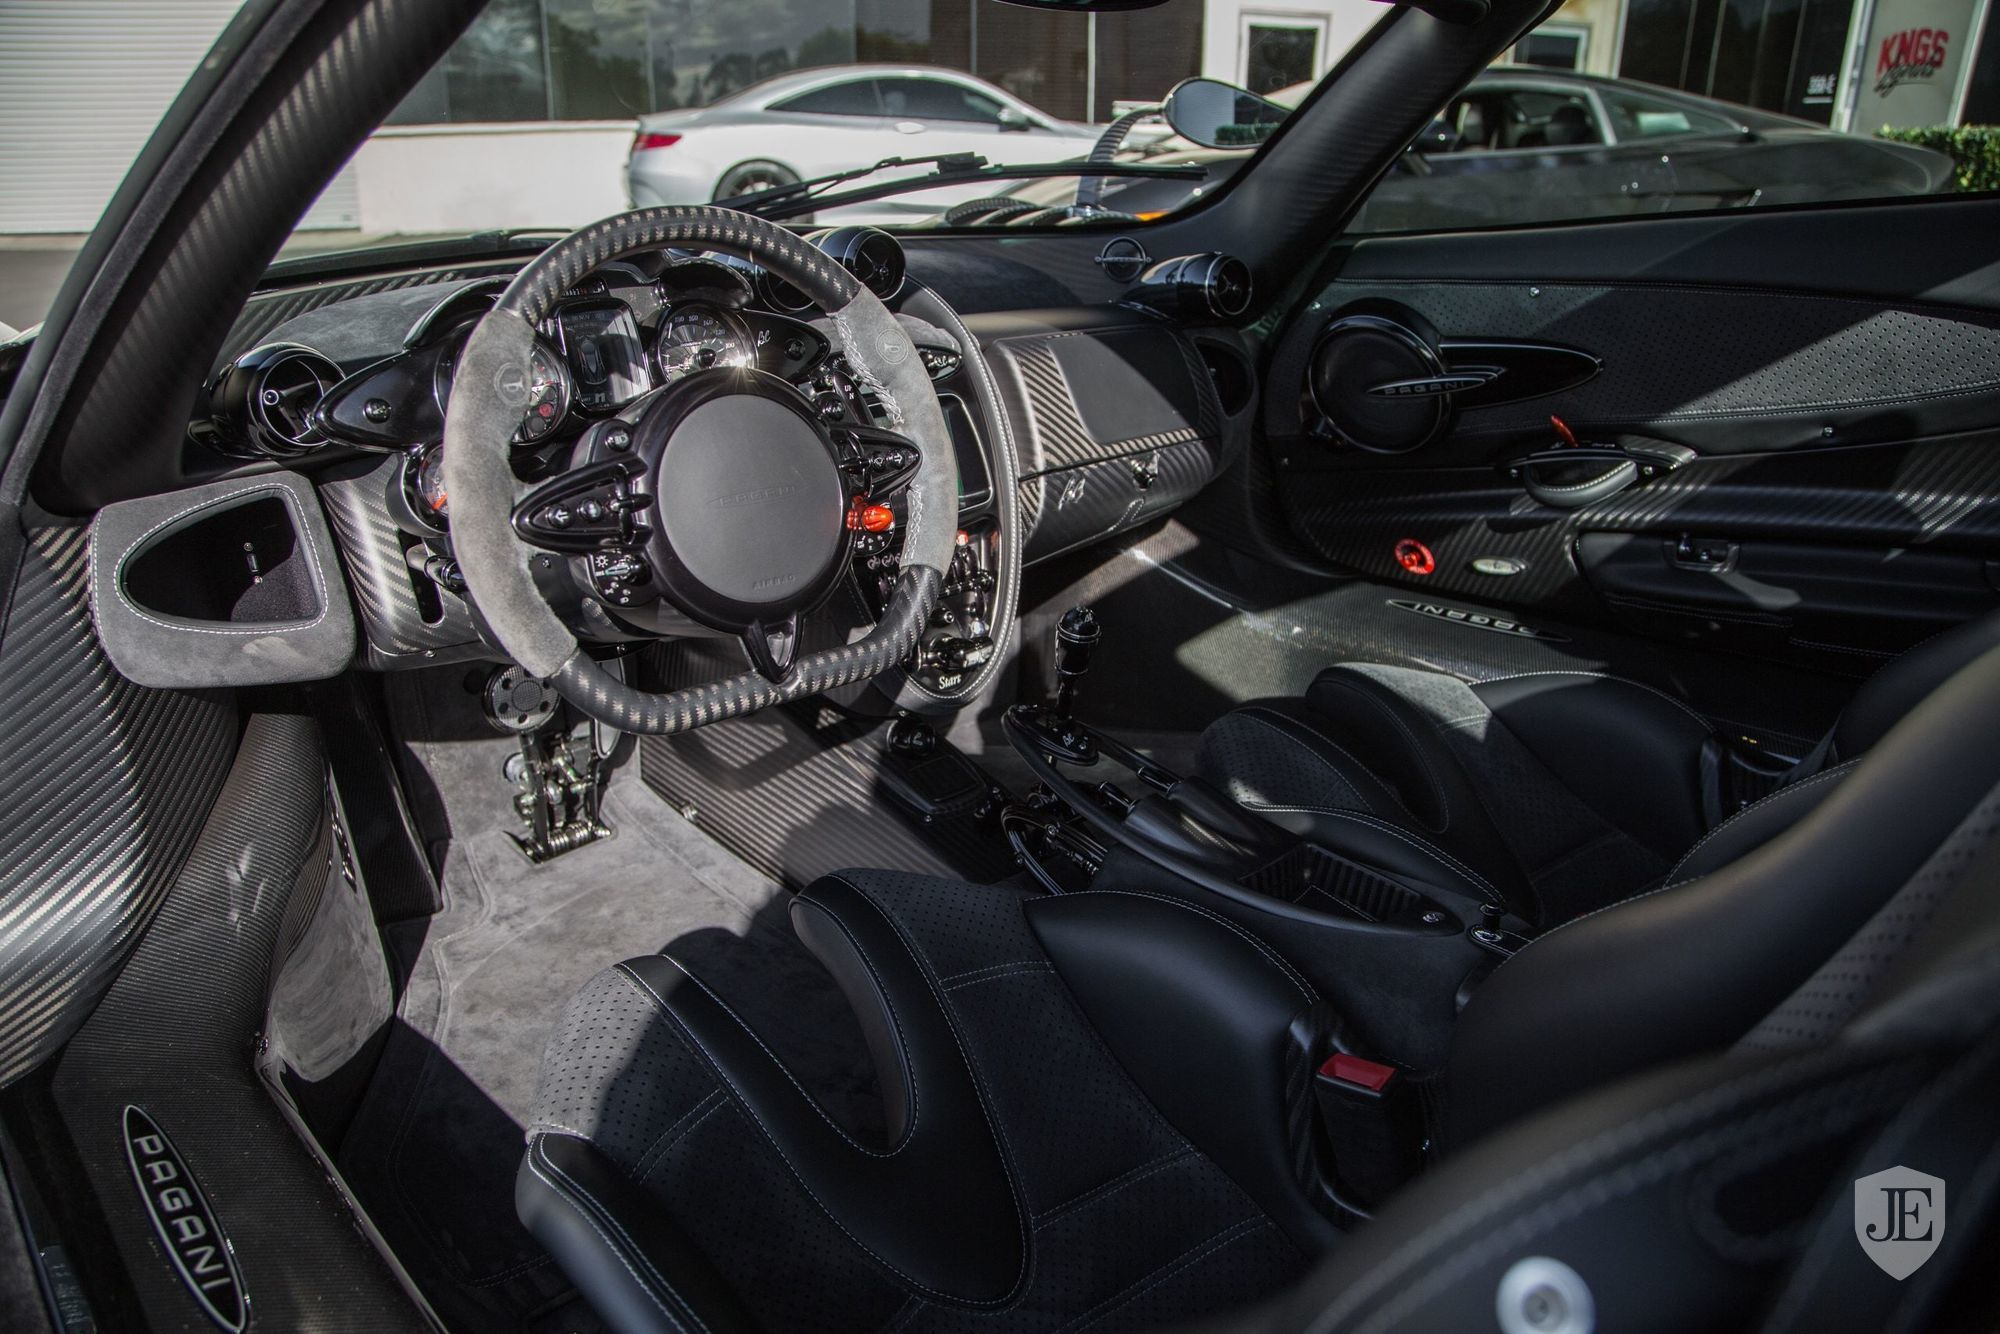 pagani huayra bc for sale in newport beach | supercar report